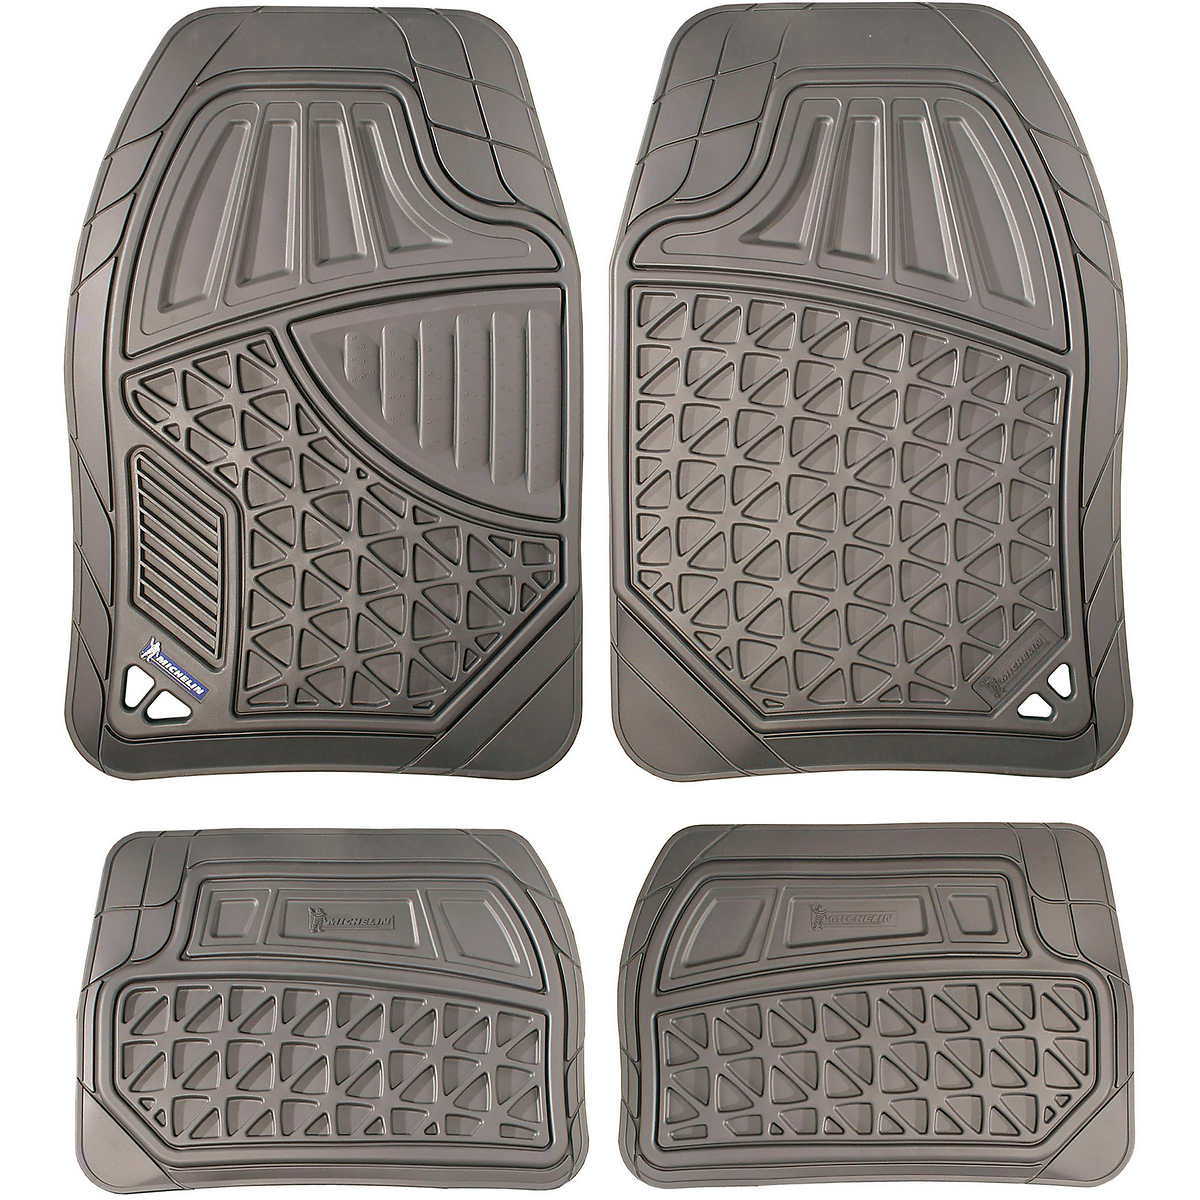 Floor mats price in chennai - Click To Zoom